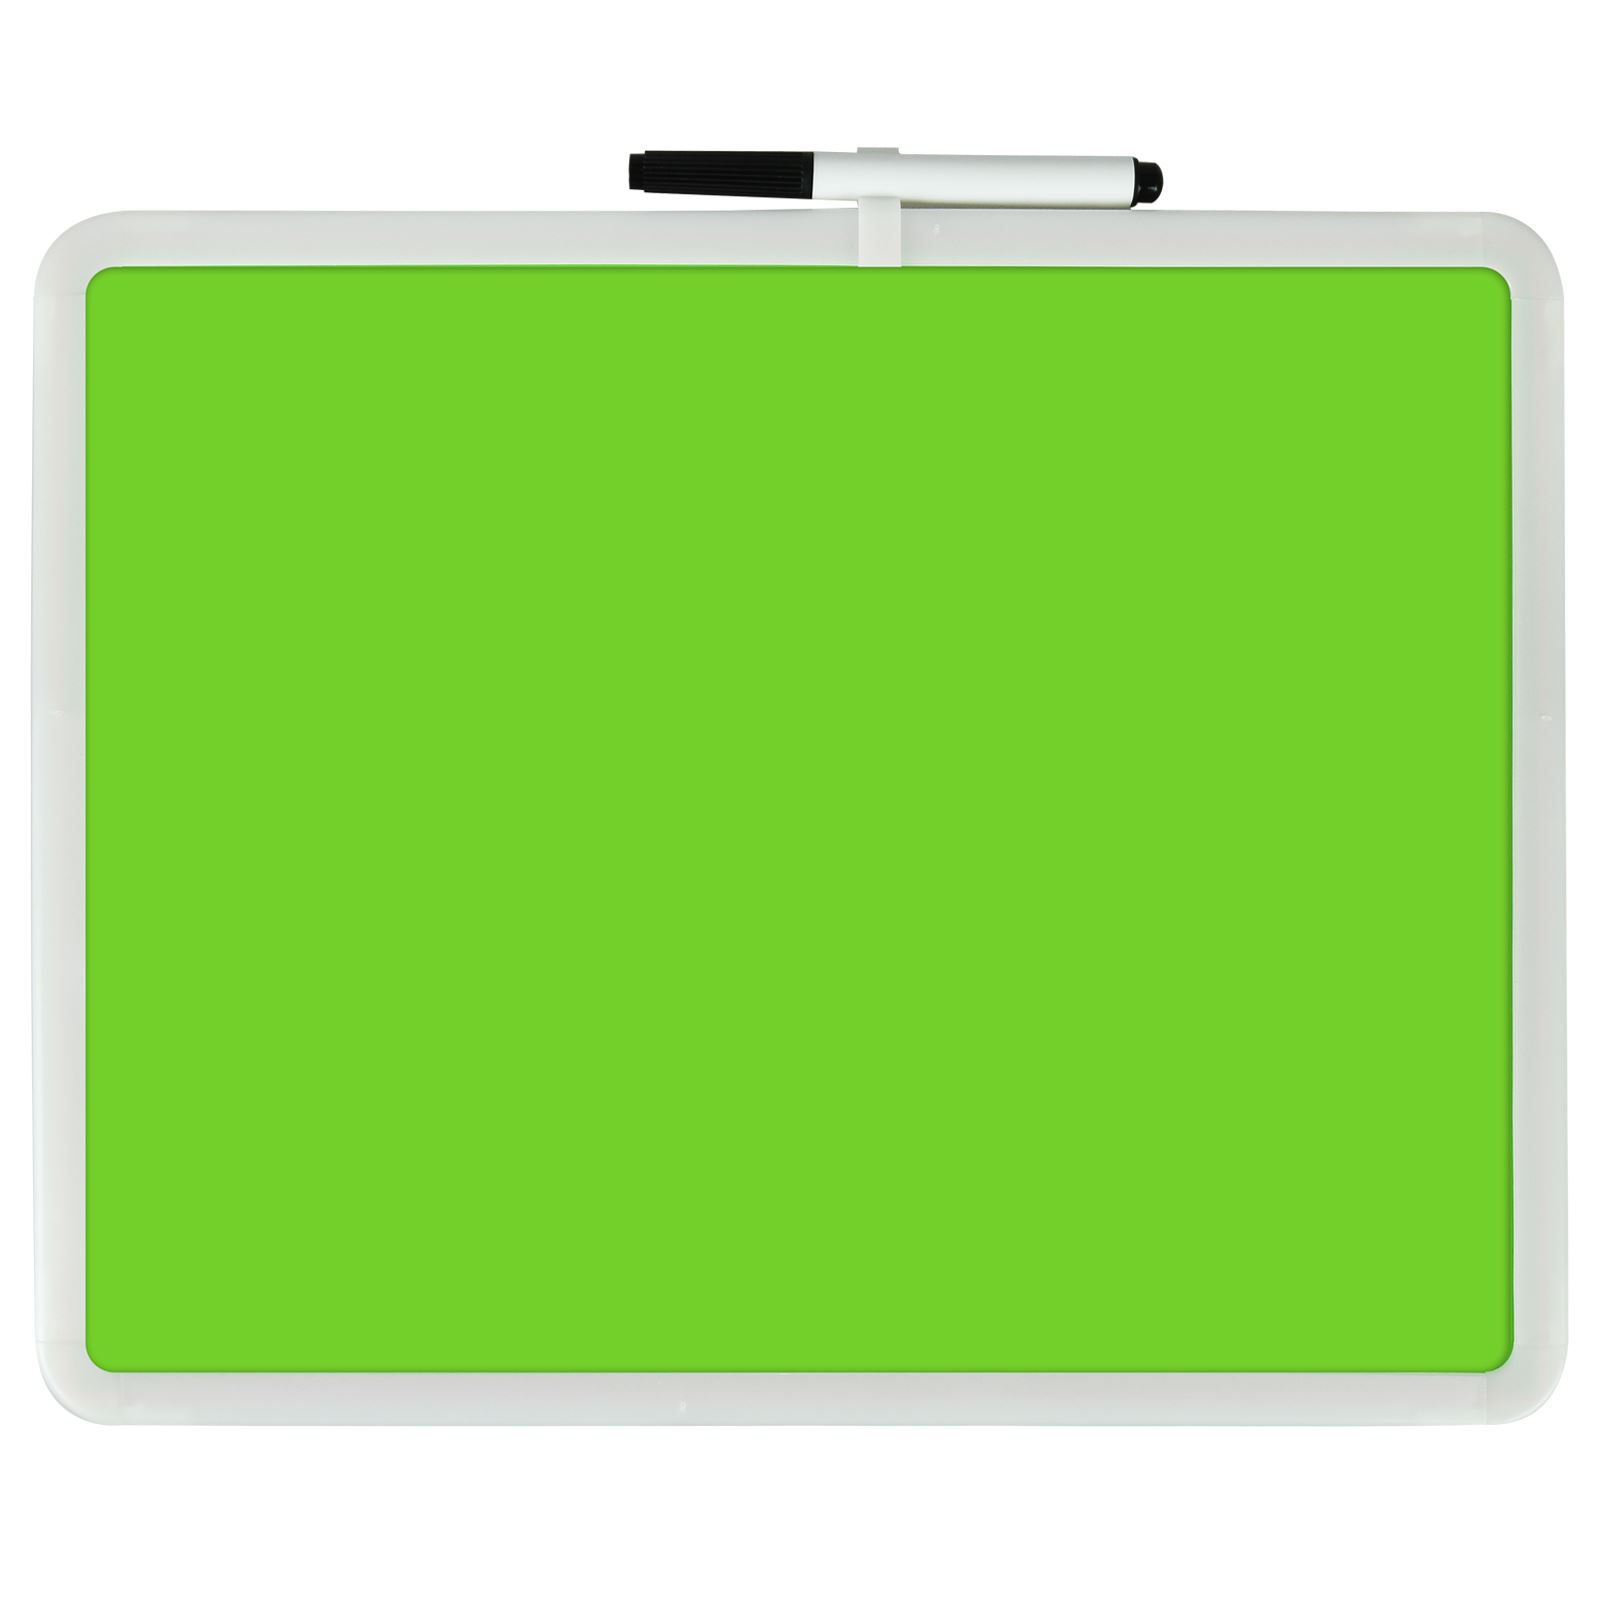 Neon-Easy-Clean-Marker-Message-Memo-Sign-Board-Office-School-Kitchen-With-Pen thumbnail 5